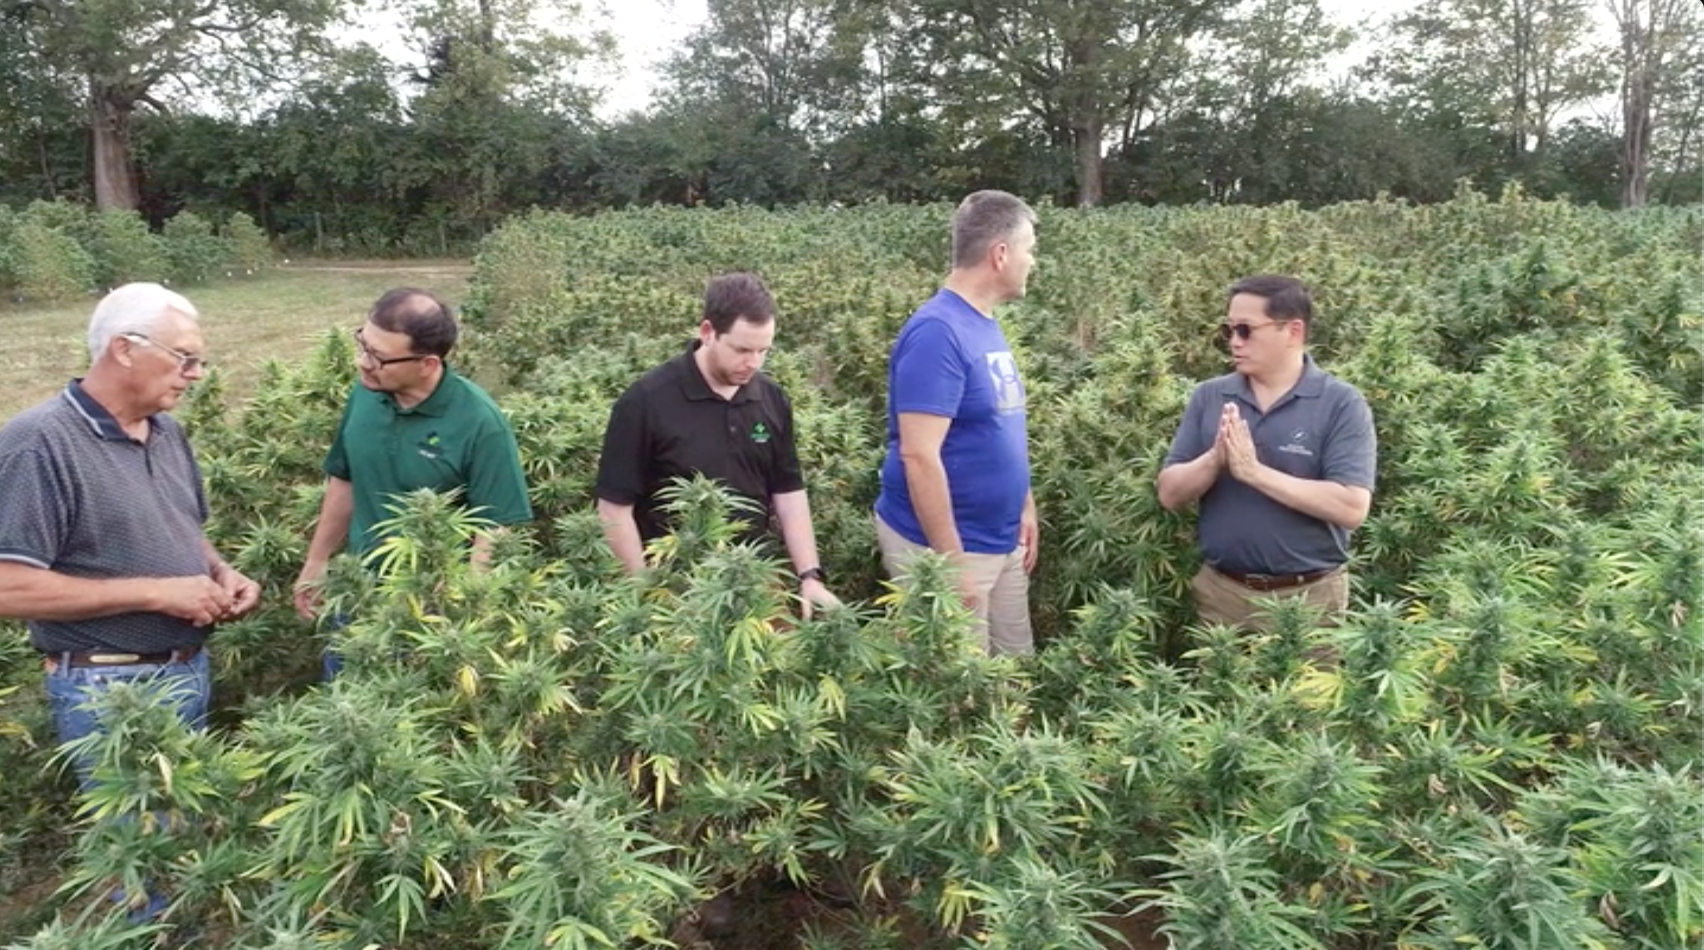 Inspecting the hemp crop